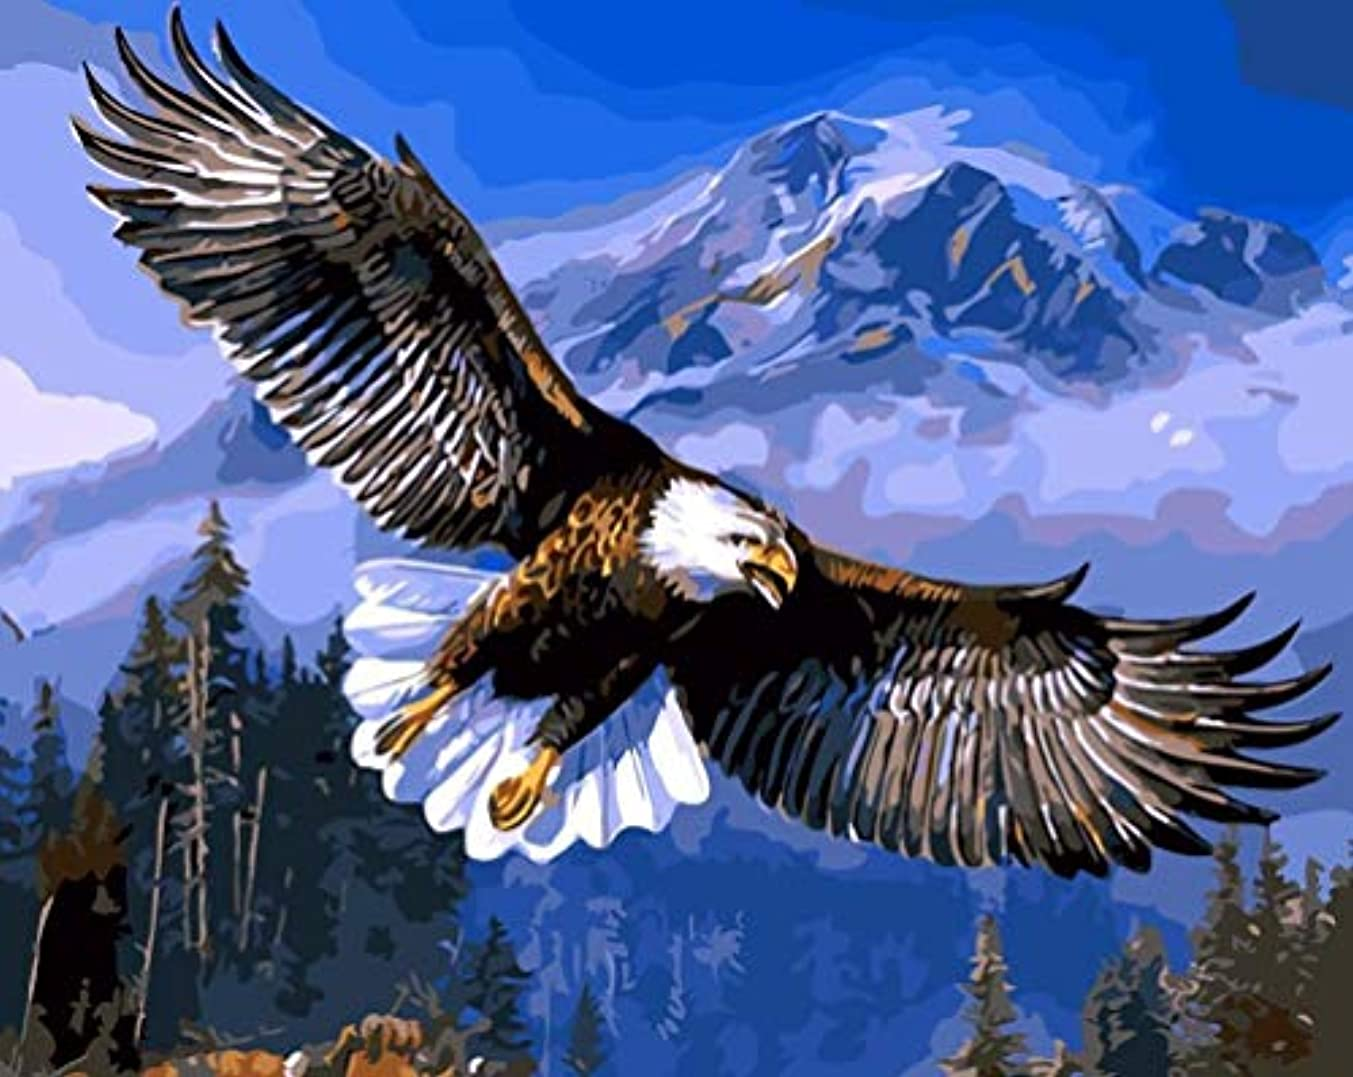 SHUAXIN DIY Acrylic Painting,Paint by Numbers Kits by Hand Colouring for Adults Kids Beginner Gifts - Flying Eagle Pattern 16x20 inches Without Frame